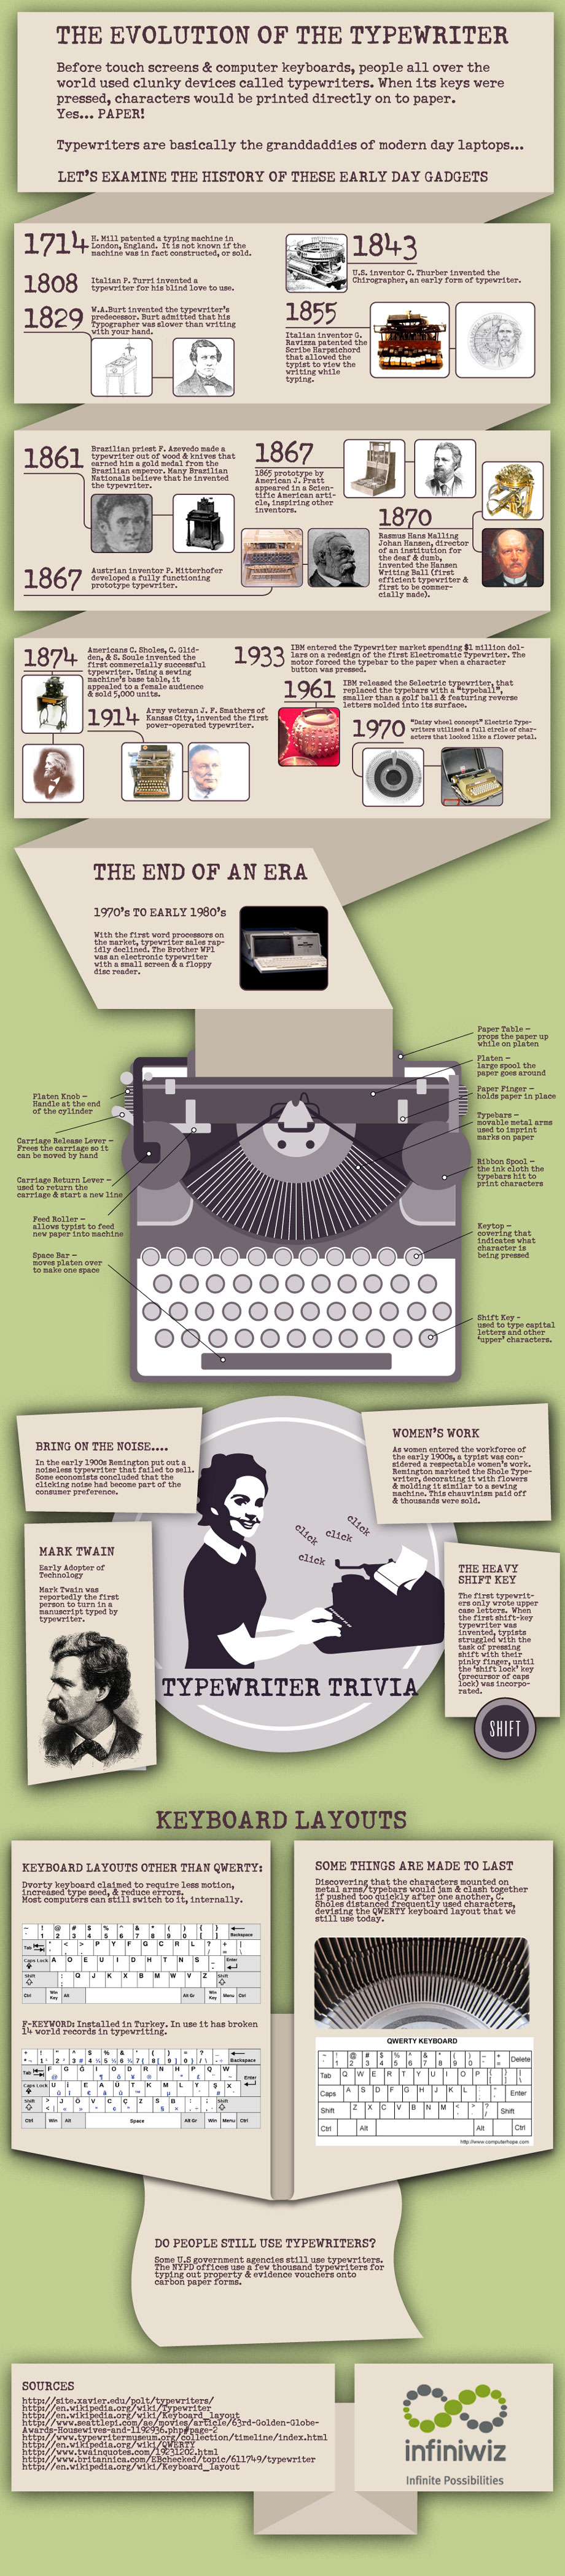 The evolution of the typewriter